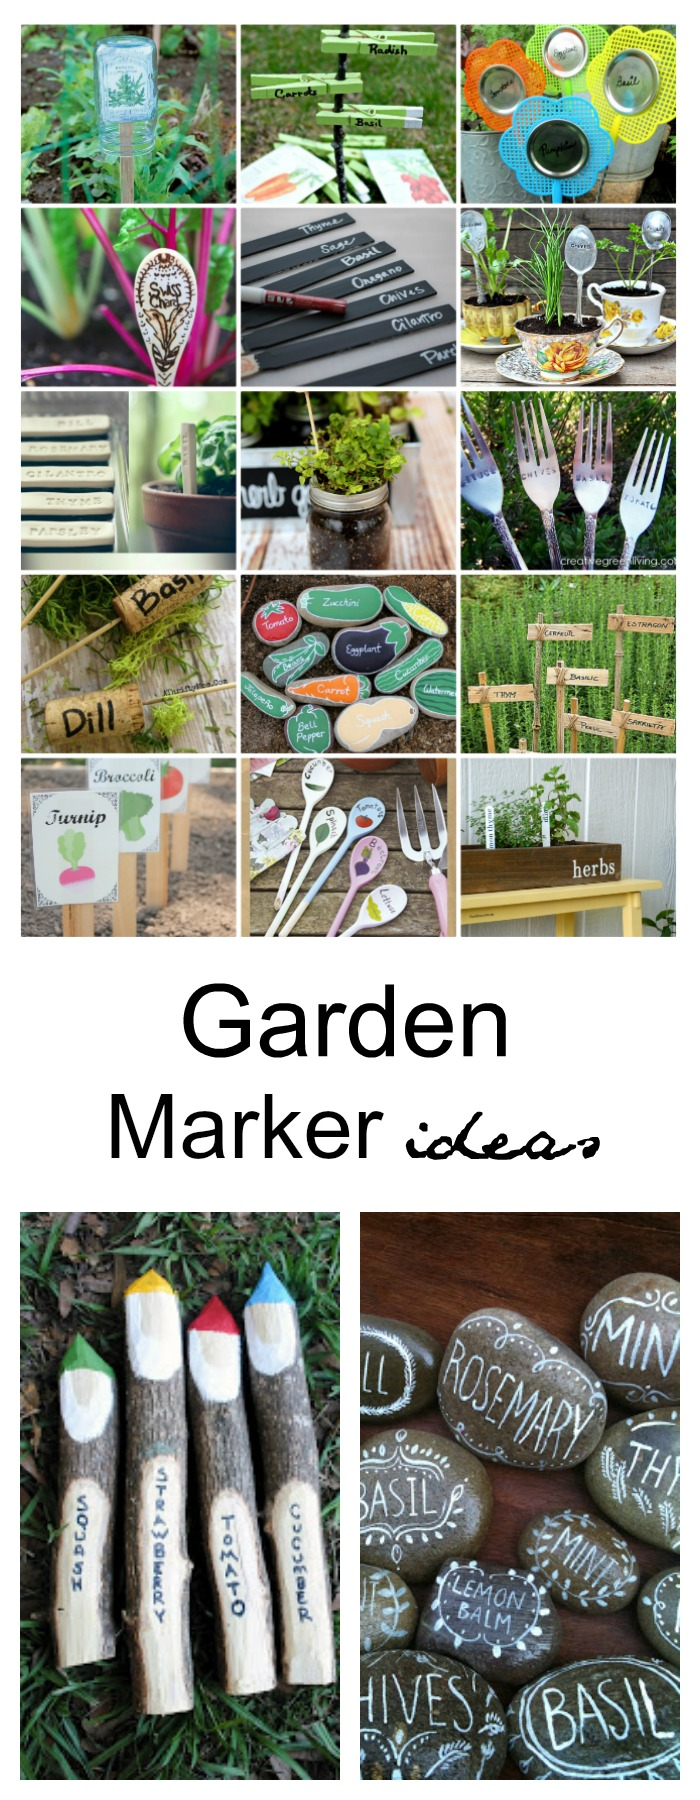 Garden-Marker-Ideas-Pin